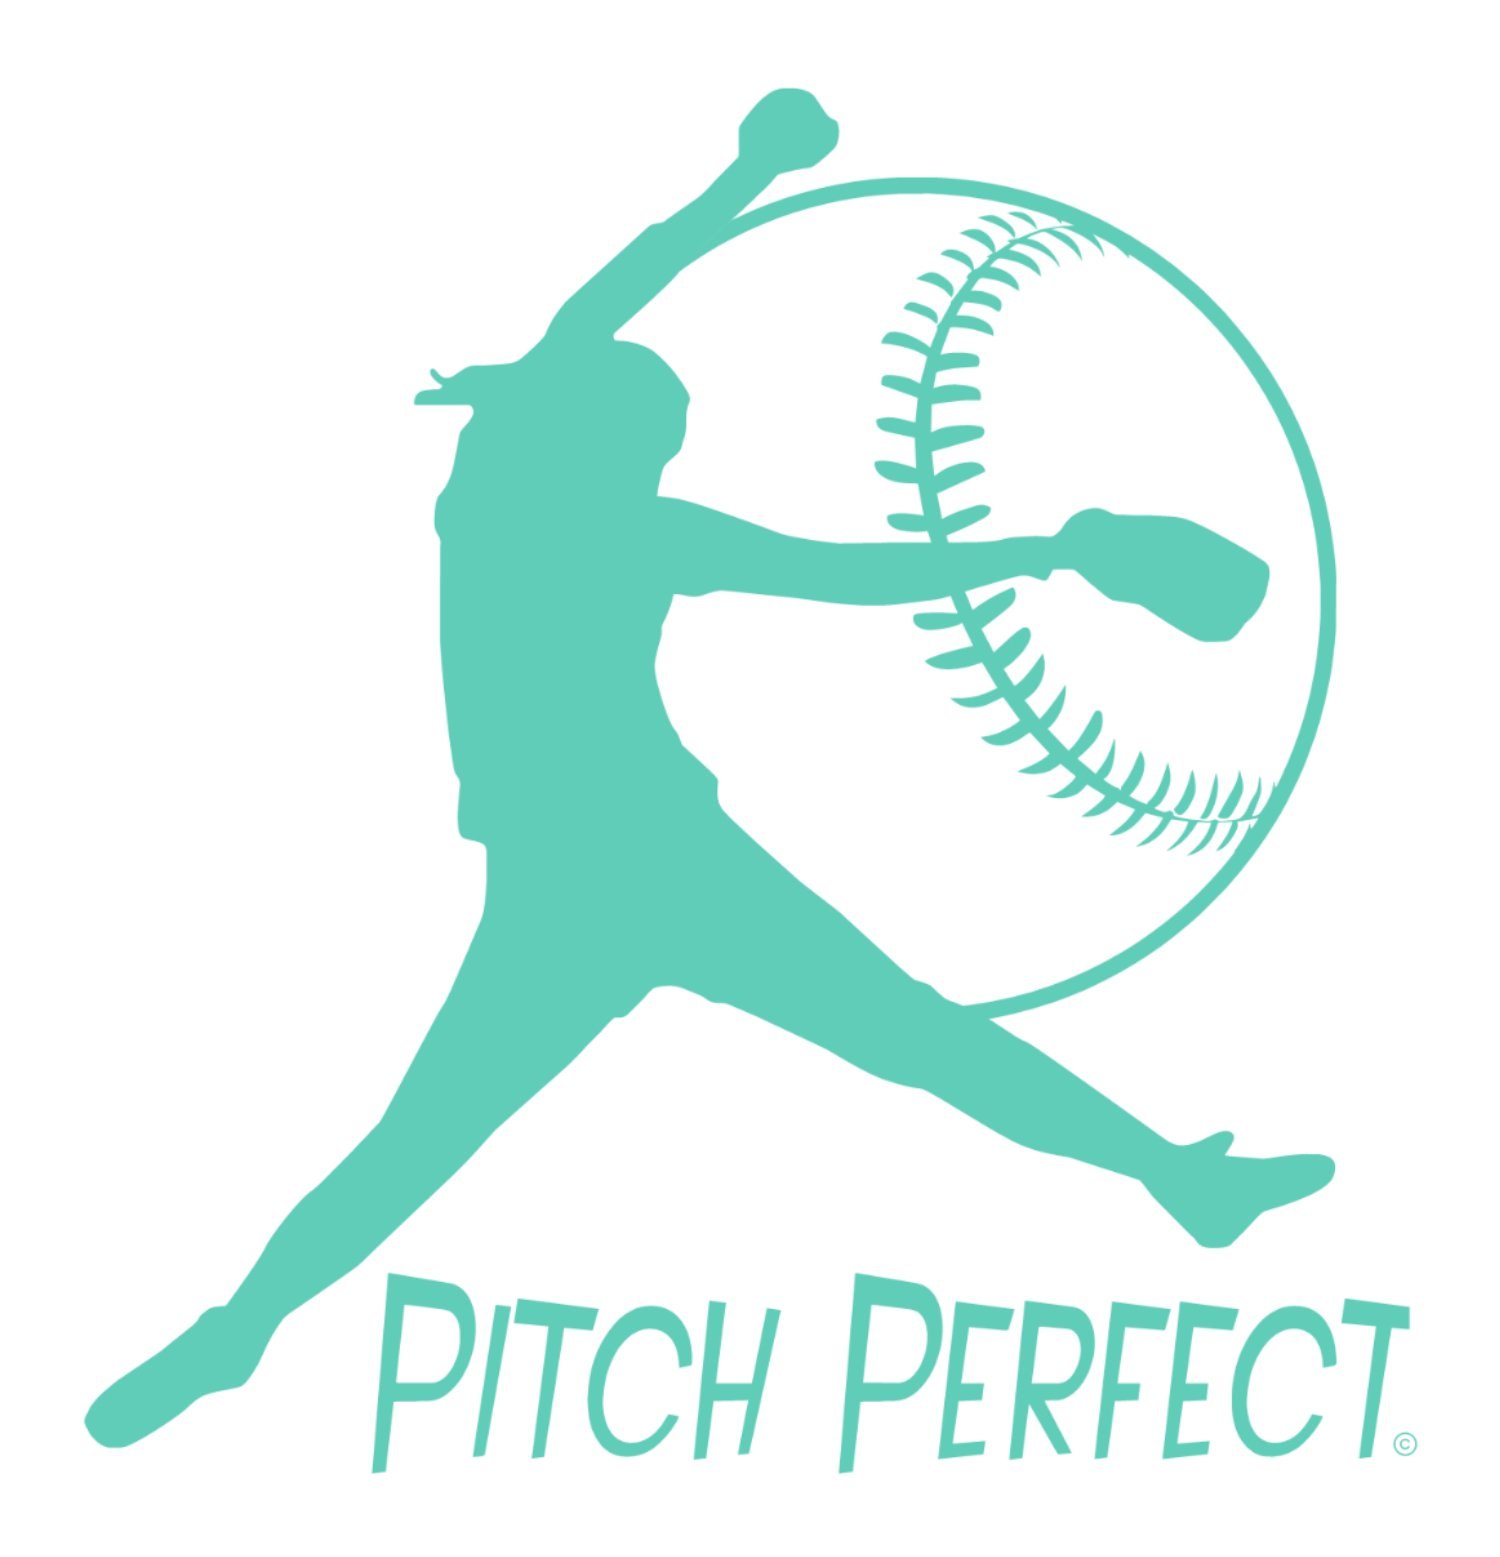 Pitch Perfect-Fastpitch Softball-Indoor Vinyl Wall Decal-Girls Softball-Unique Softball Gift-Young Girls Bedroom-Teenagers Playroom-Youth or College Women Softball Enthusiast-Softball Mom-MINT